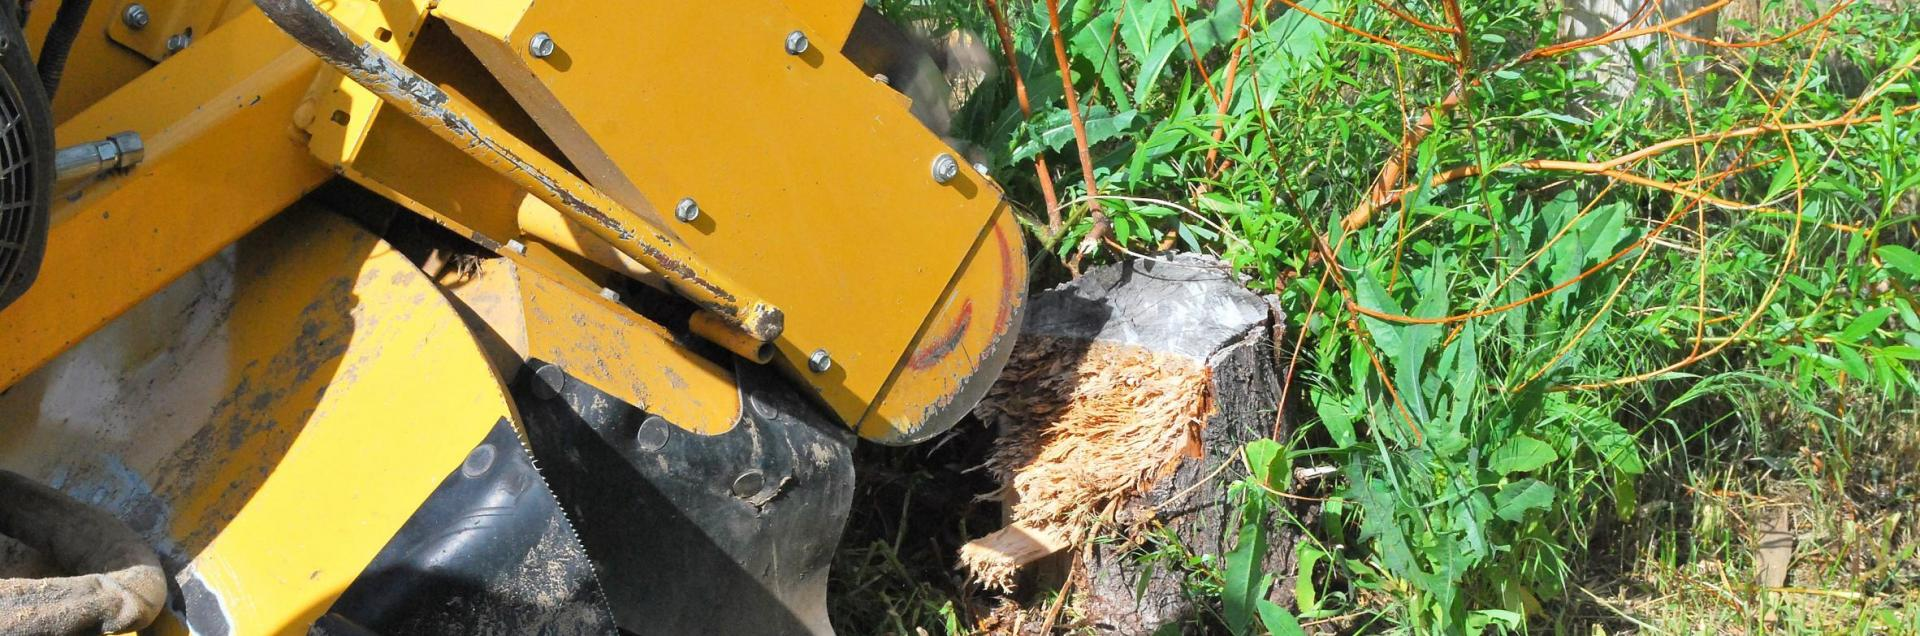 <h2 style='color:#FFFFFF !important;                                              '>Stump Grinding </h2>                                             <span class='slideDesc'>One of our main services includes stump grinding. This is a tough job so be sure to call u</span>